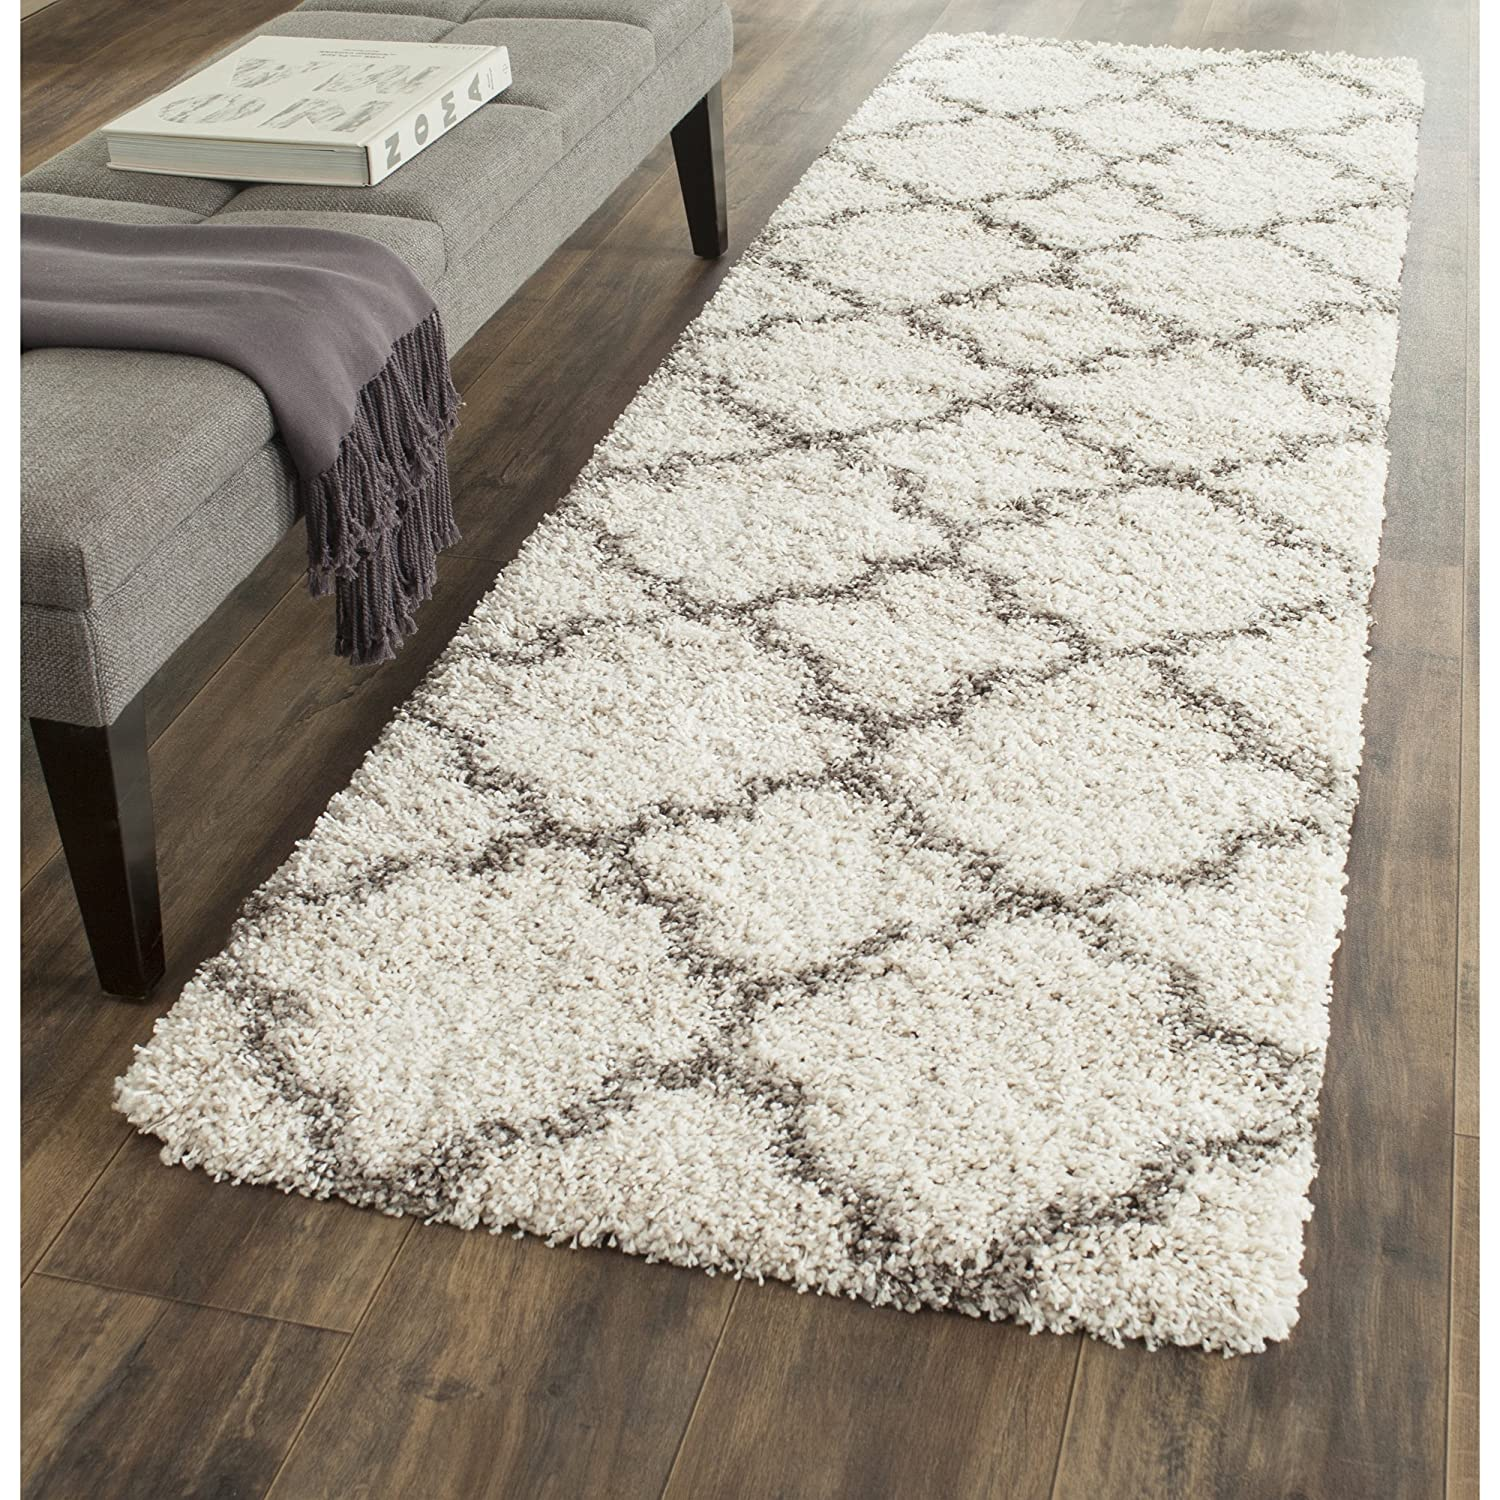 grey x kitchen com safavieh ivory dp shag dining amazon runner rug moroccan and quatrefoil geometric collection hudson